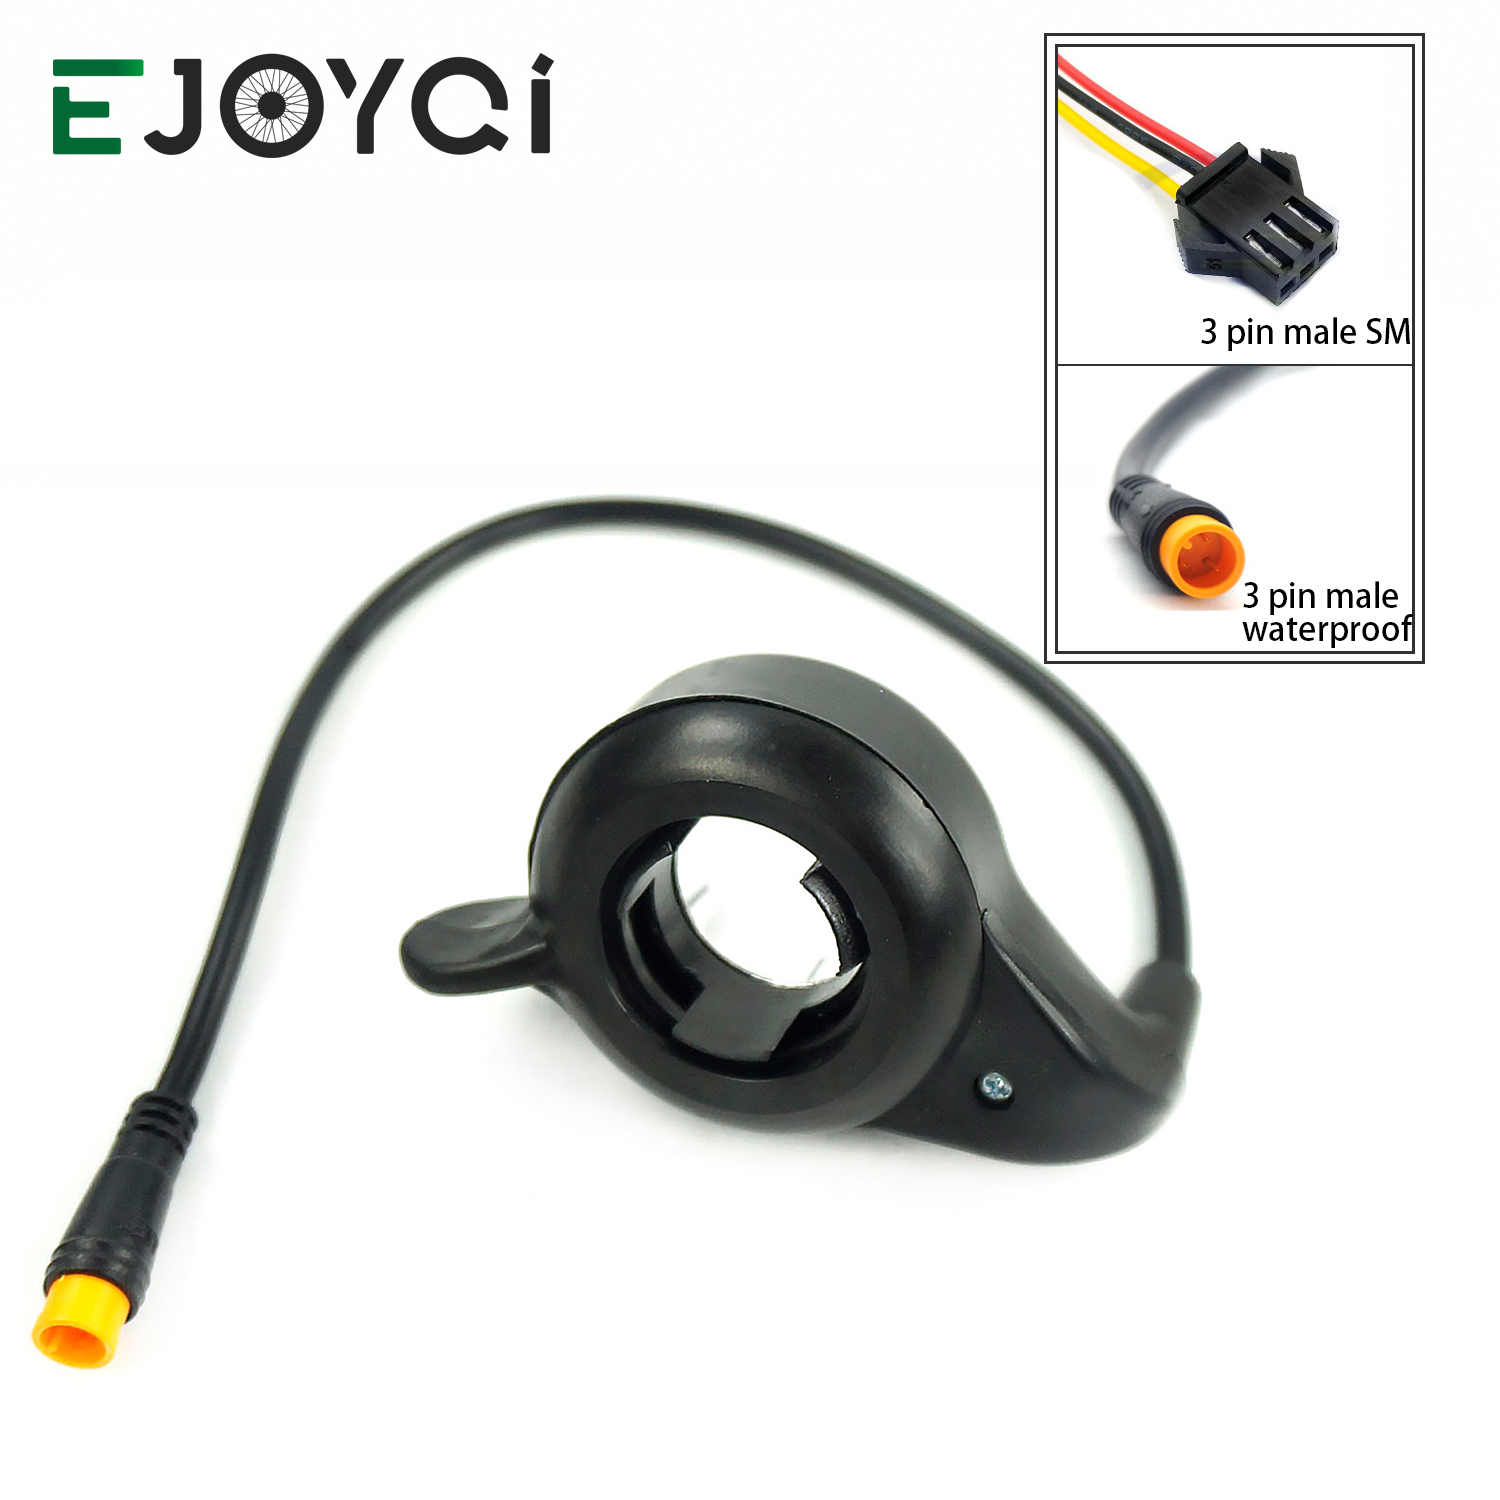 EJOYQI Ebike Right Hand FT-21X  Finger Thumb Throttle SM Waterproof  Ebike Electric Bicycle Parts WUXING Brand Free Shipping